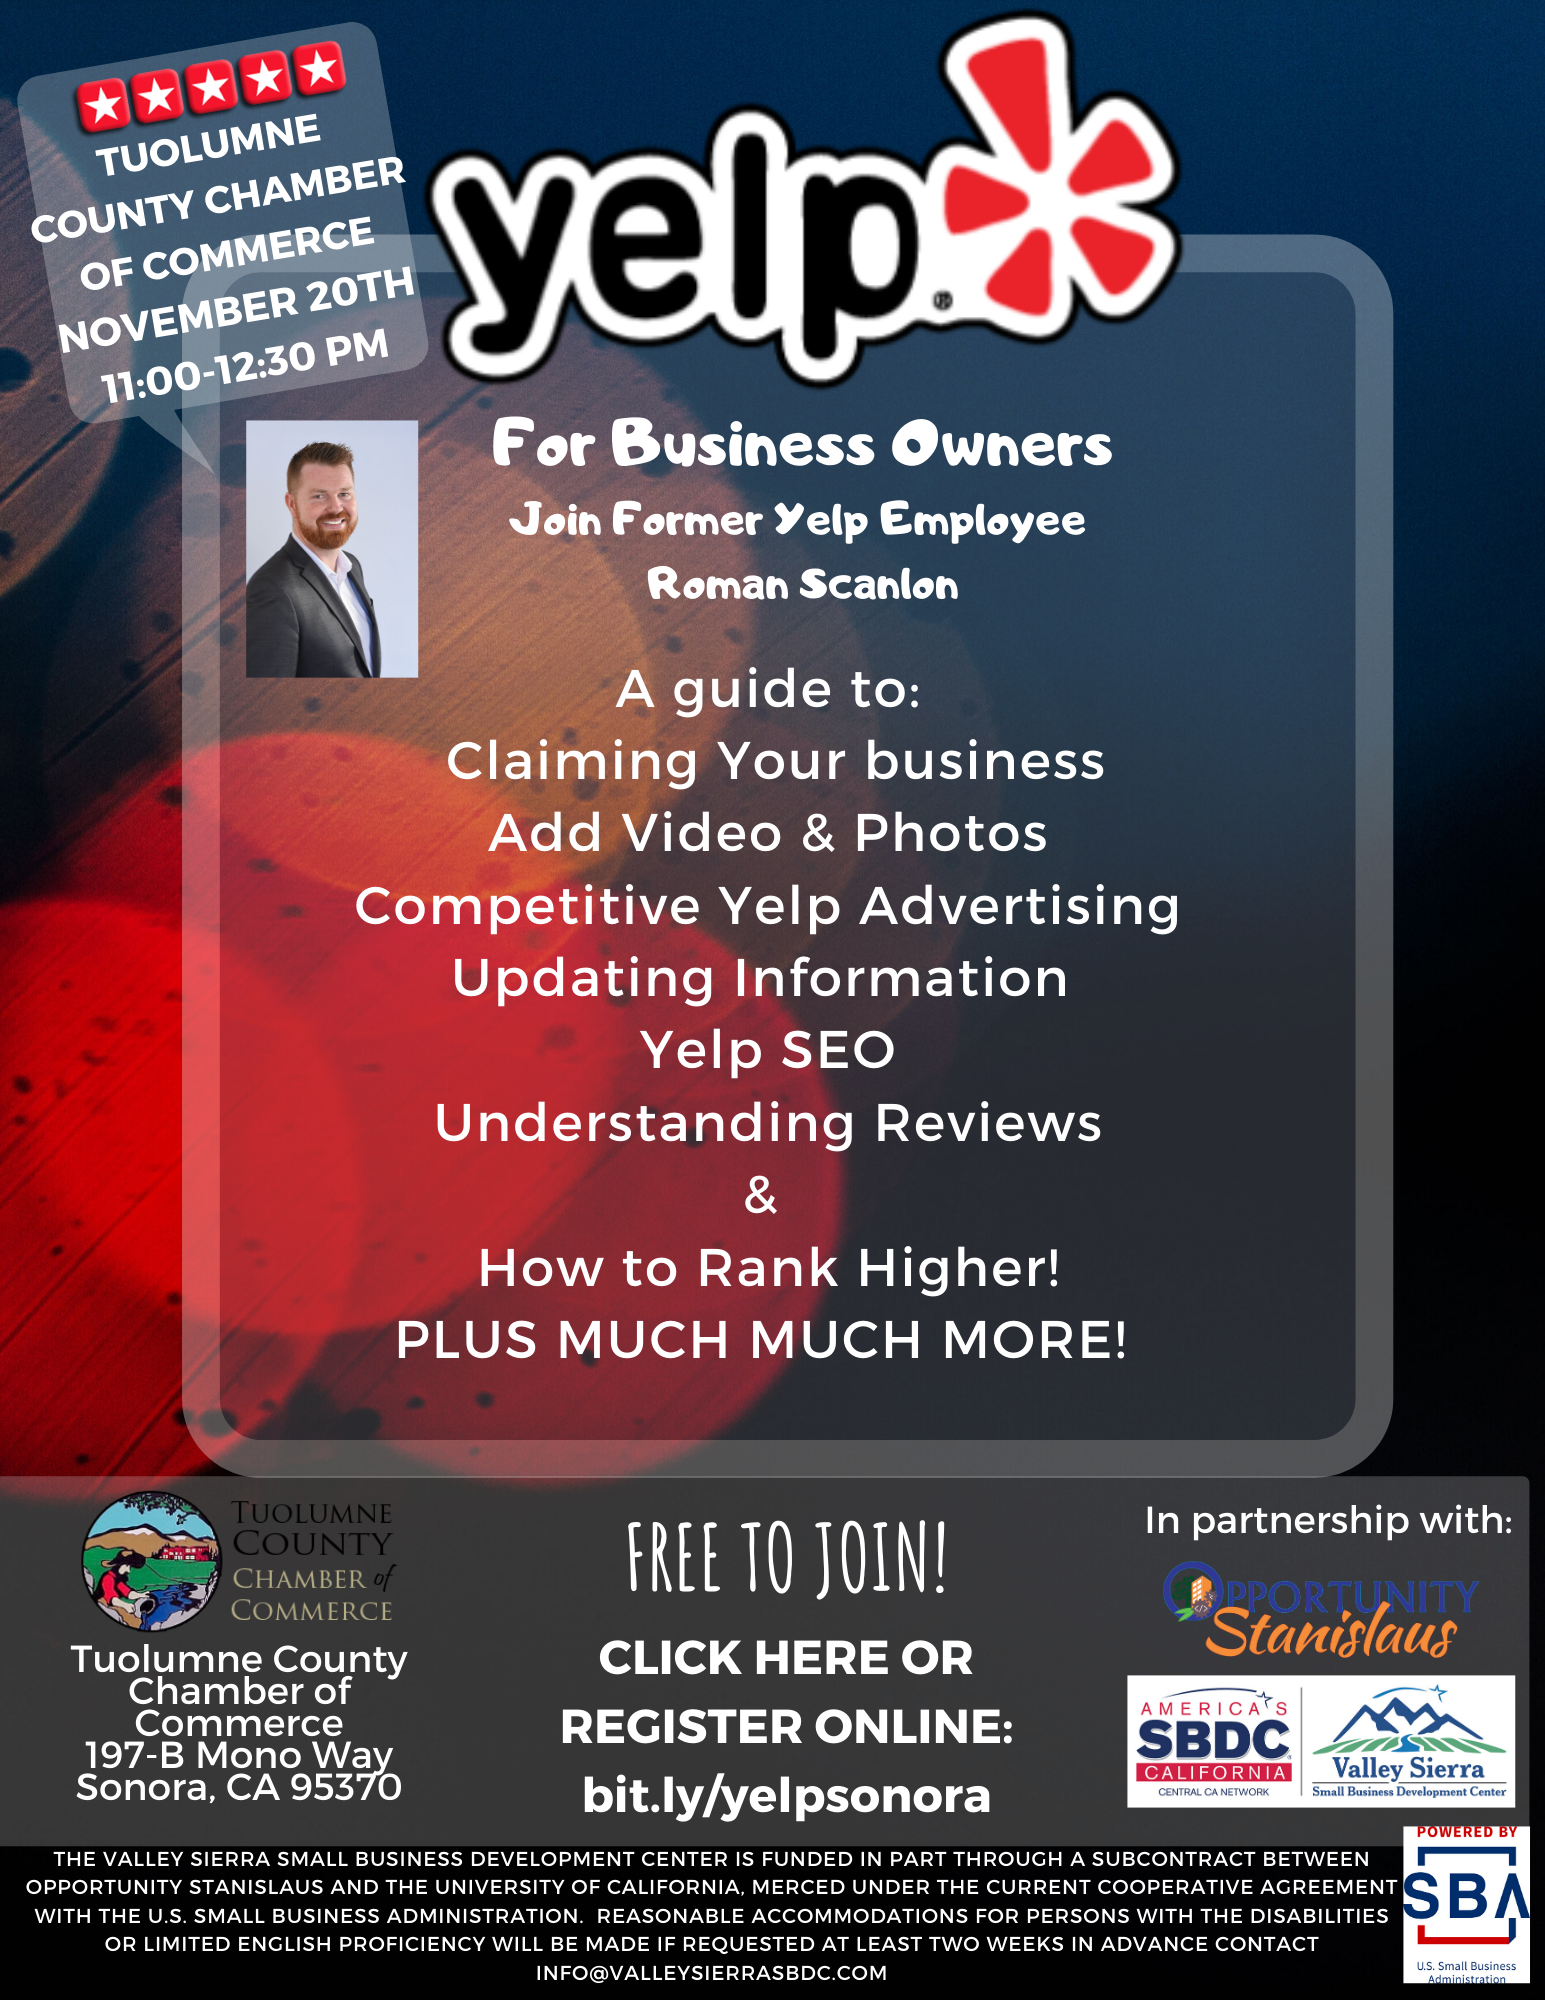 Yelp Business Flyer hosted by Valley Sierra SBDC & Tuolumne County Chamber of Commerce